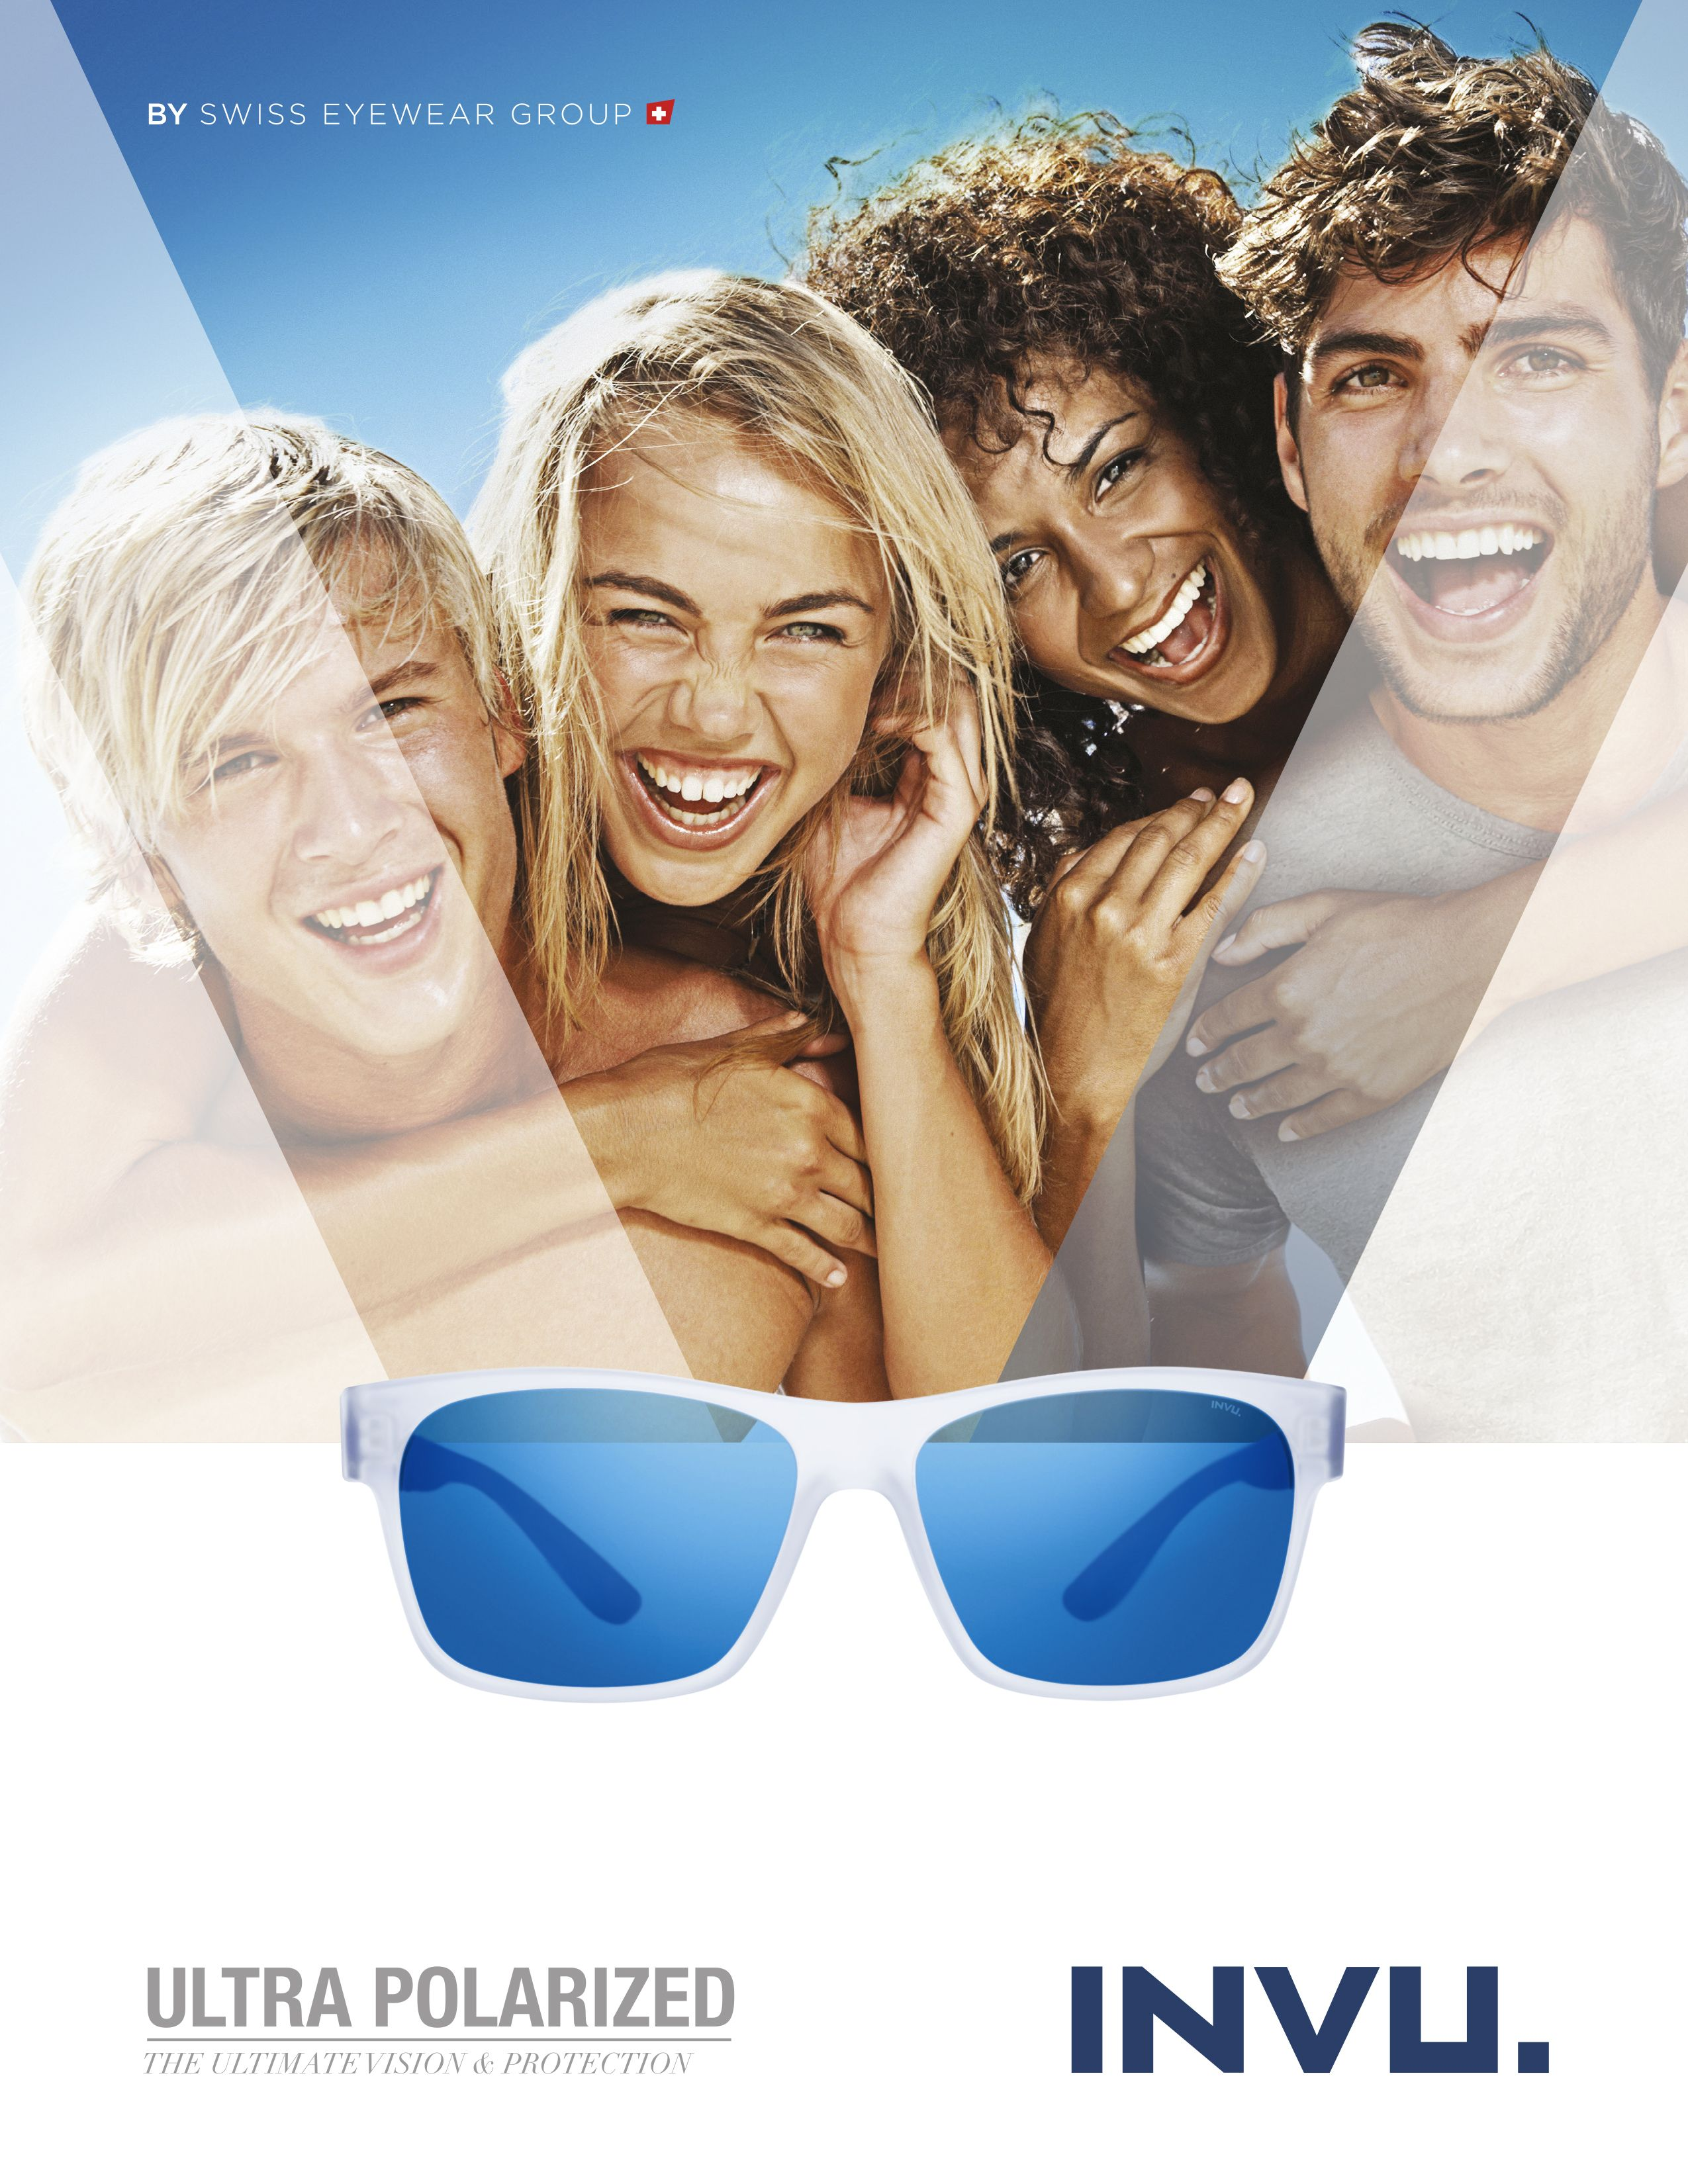 2cef0315ad Swiss Eyewear Group launches invu. eyewear   SwissEyeywearGroup   Invueyewear